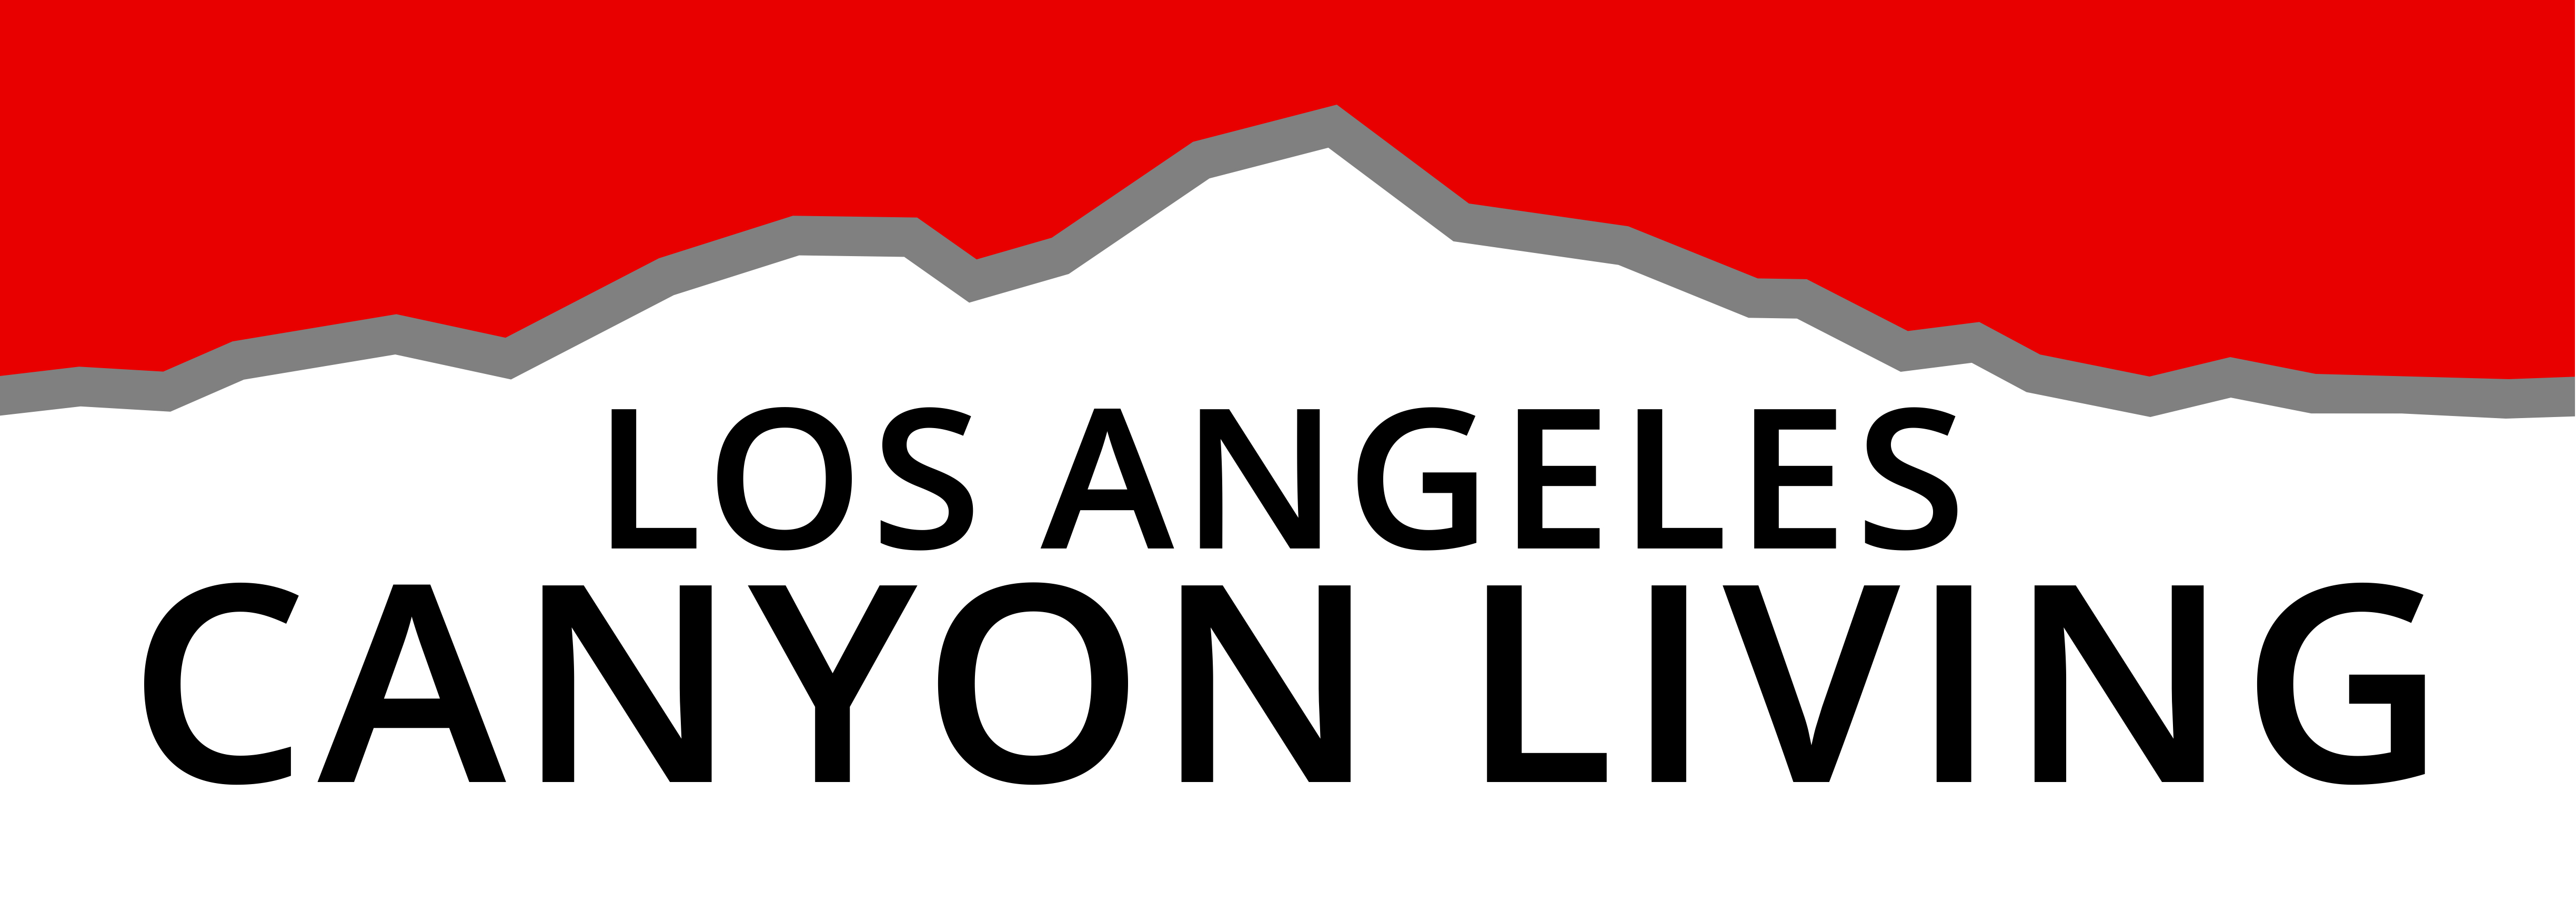 Los Angeles Canyon Living | Eileen Walsh Realtor